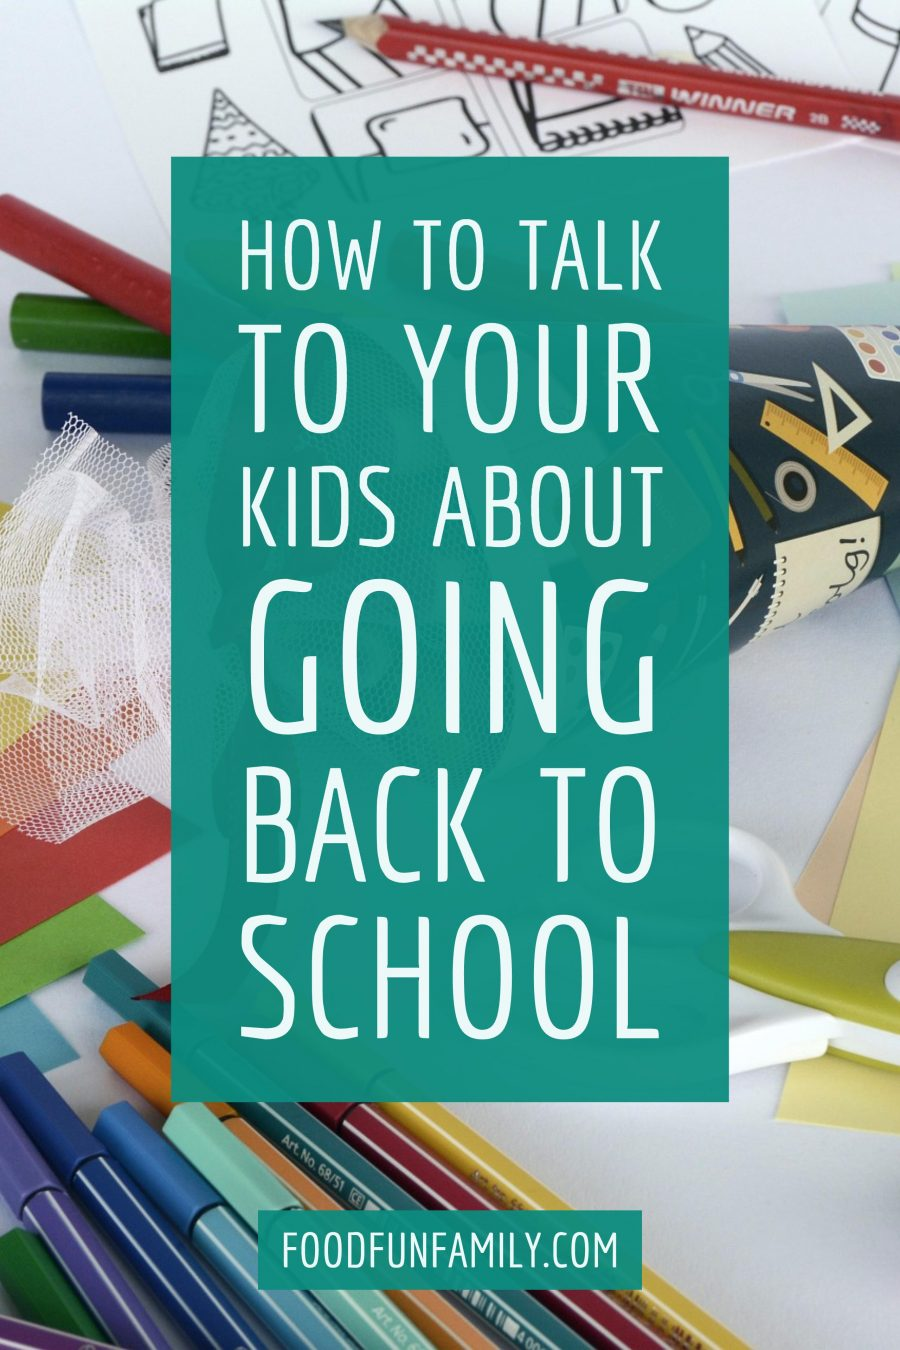 How to talk to your kids about back to school, and what preparing for the emotional aspect of back to school season is just as important as the school supply shopping trip